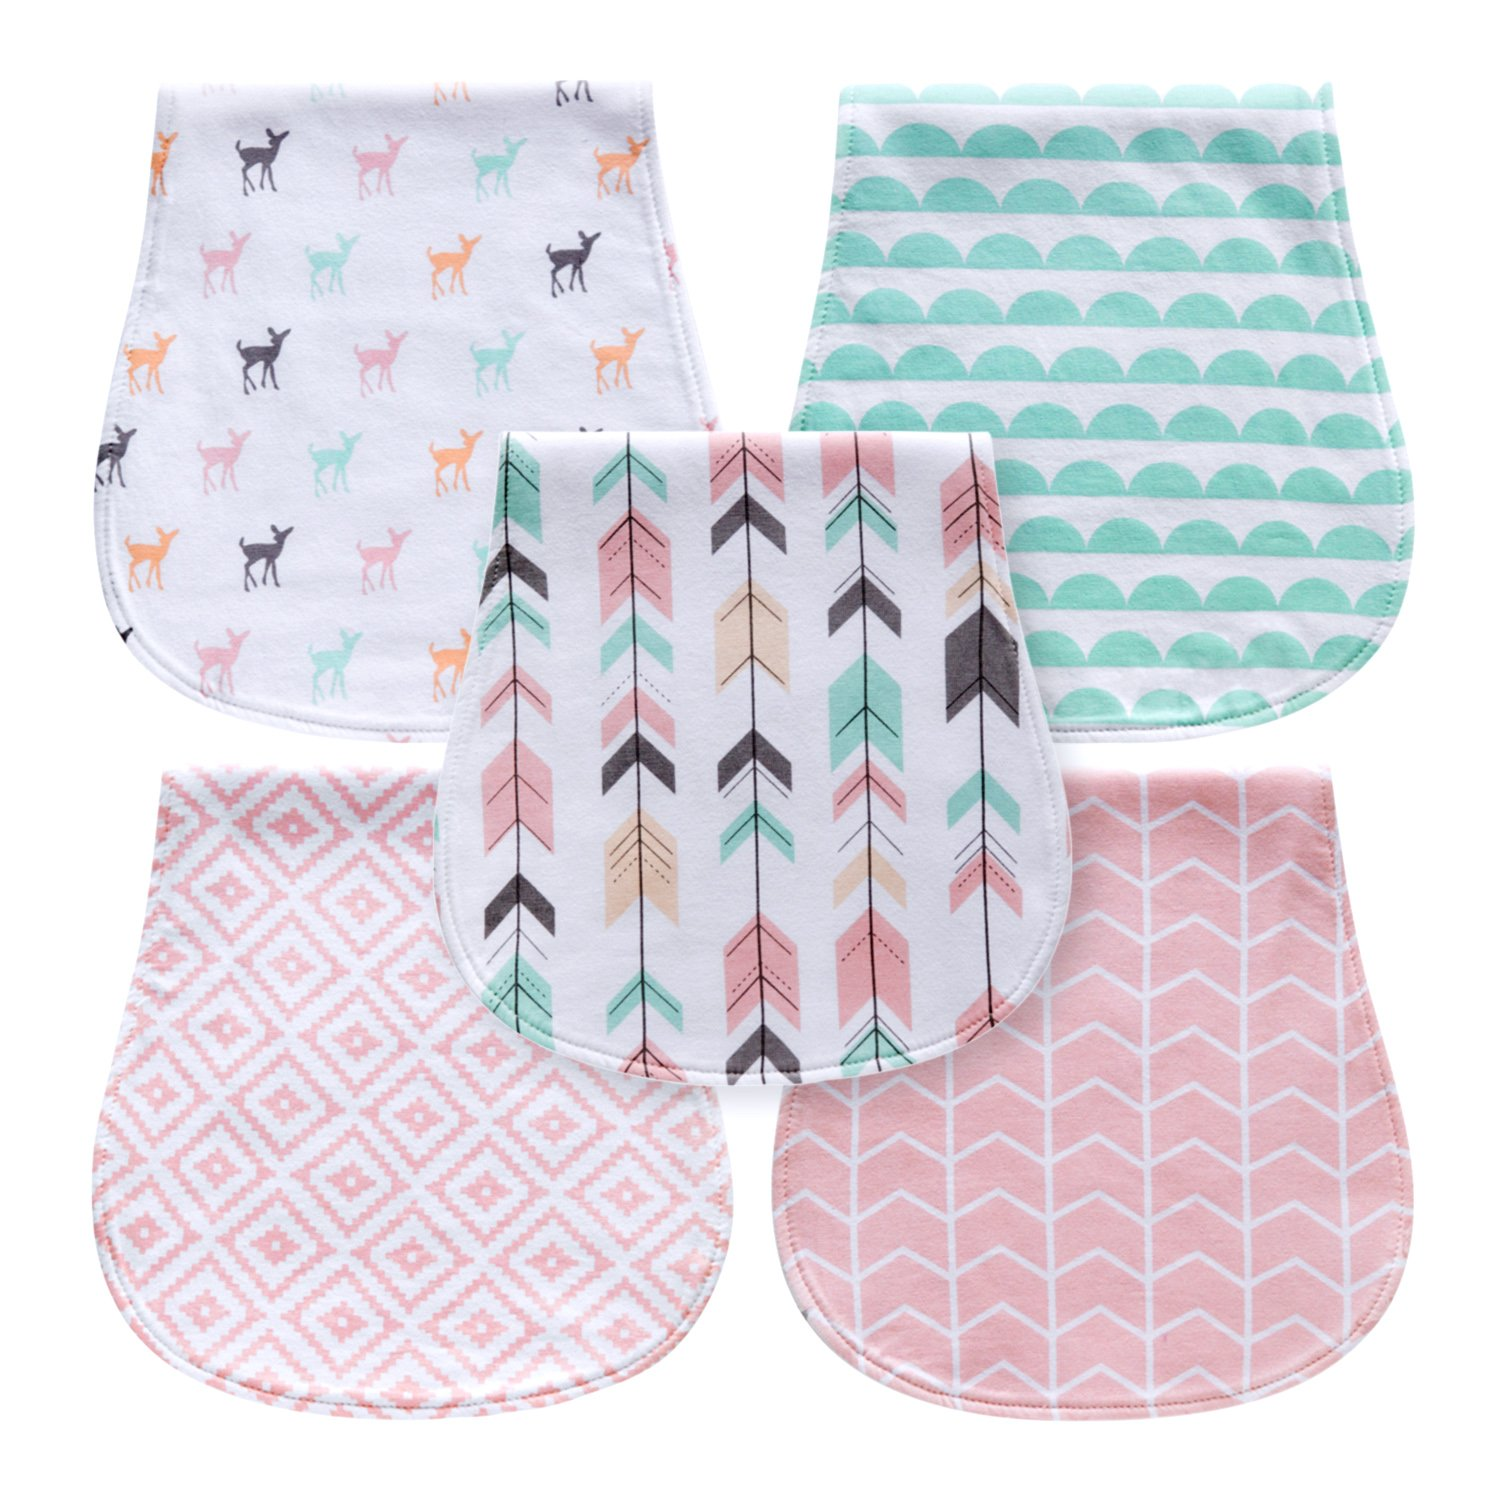 5-Pack Baby Burp Cloths for Girls, Triple Layer, 100% Organic Cotton, Soft and Absorbent Towels, Burping Rags for Newborns Baby Shower Gift Set by MiiYoung (Woodland) by MiiYoung